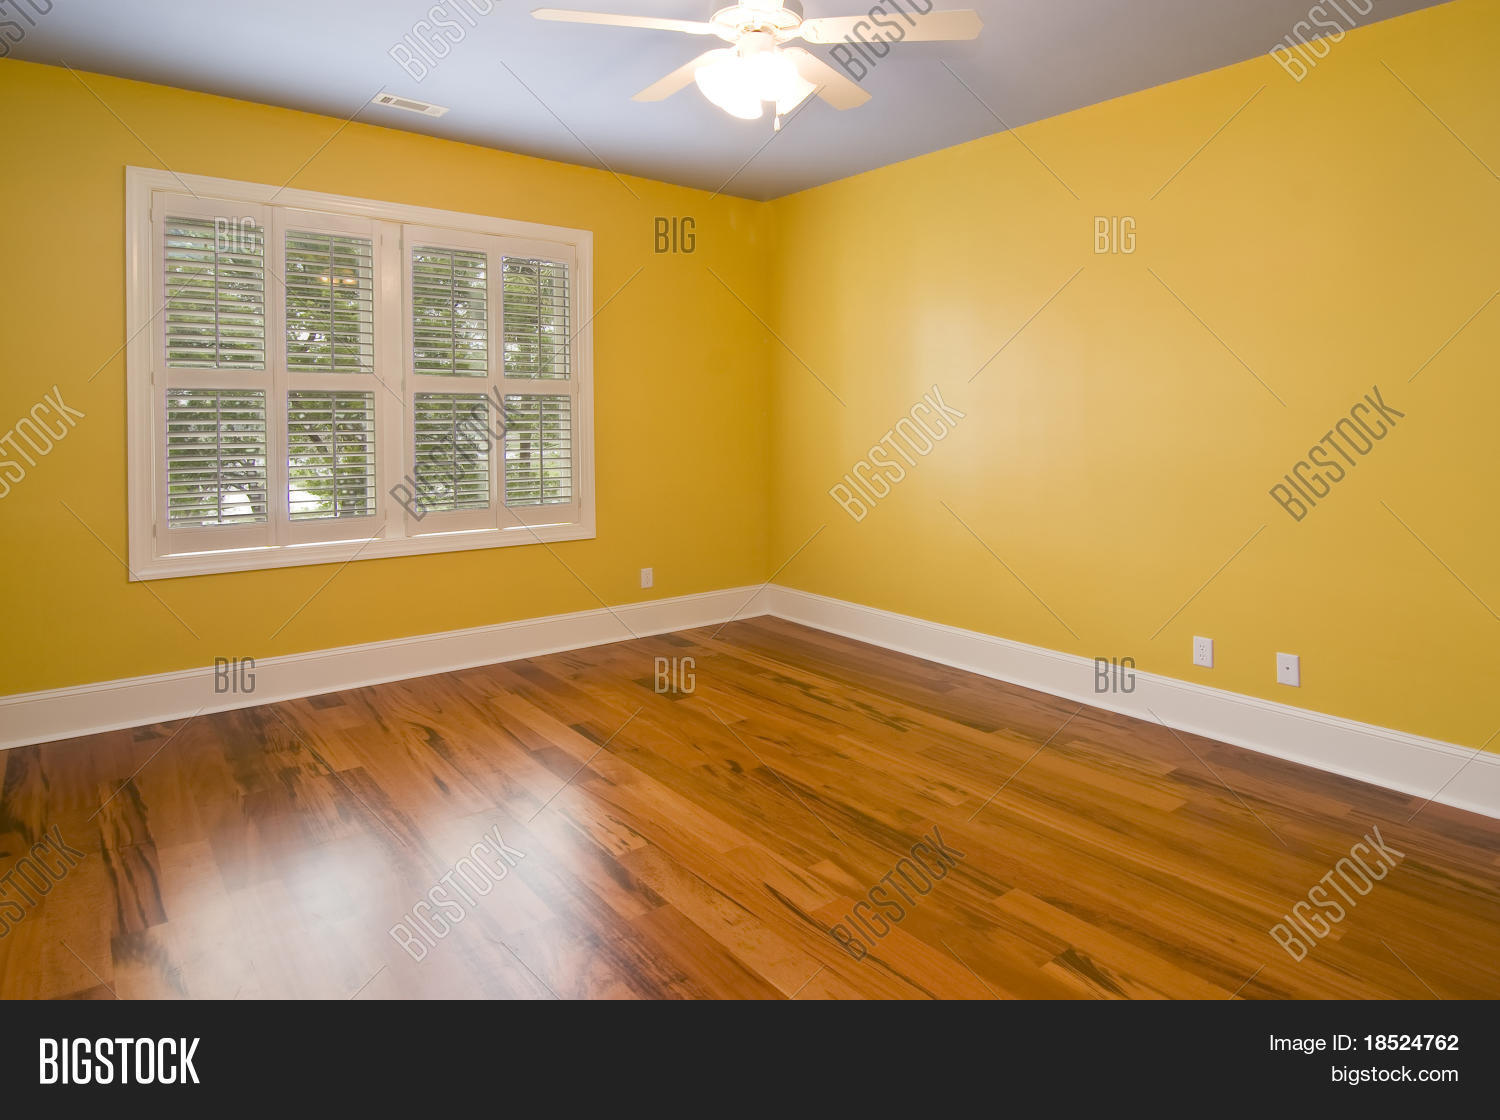 empty room yellow image photo free trial bigstock